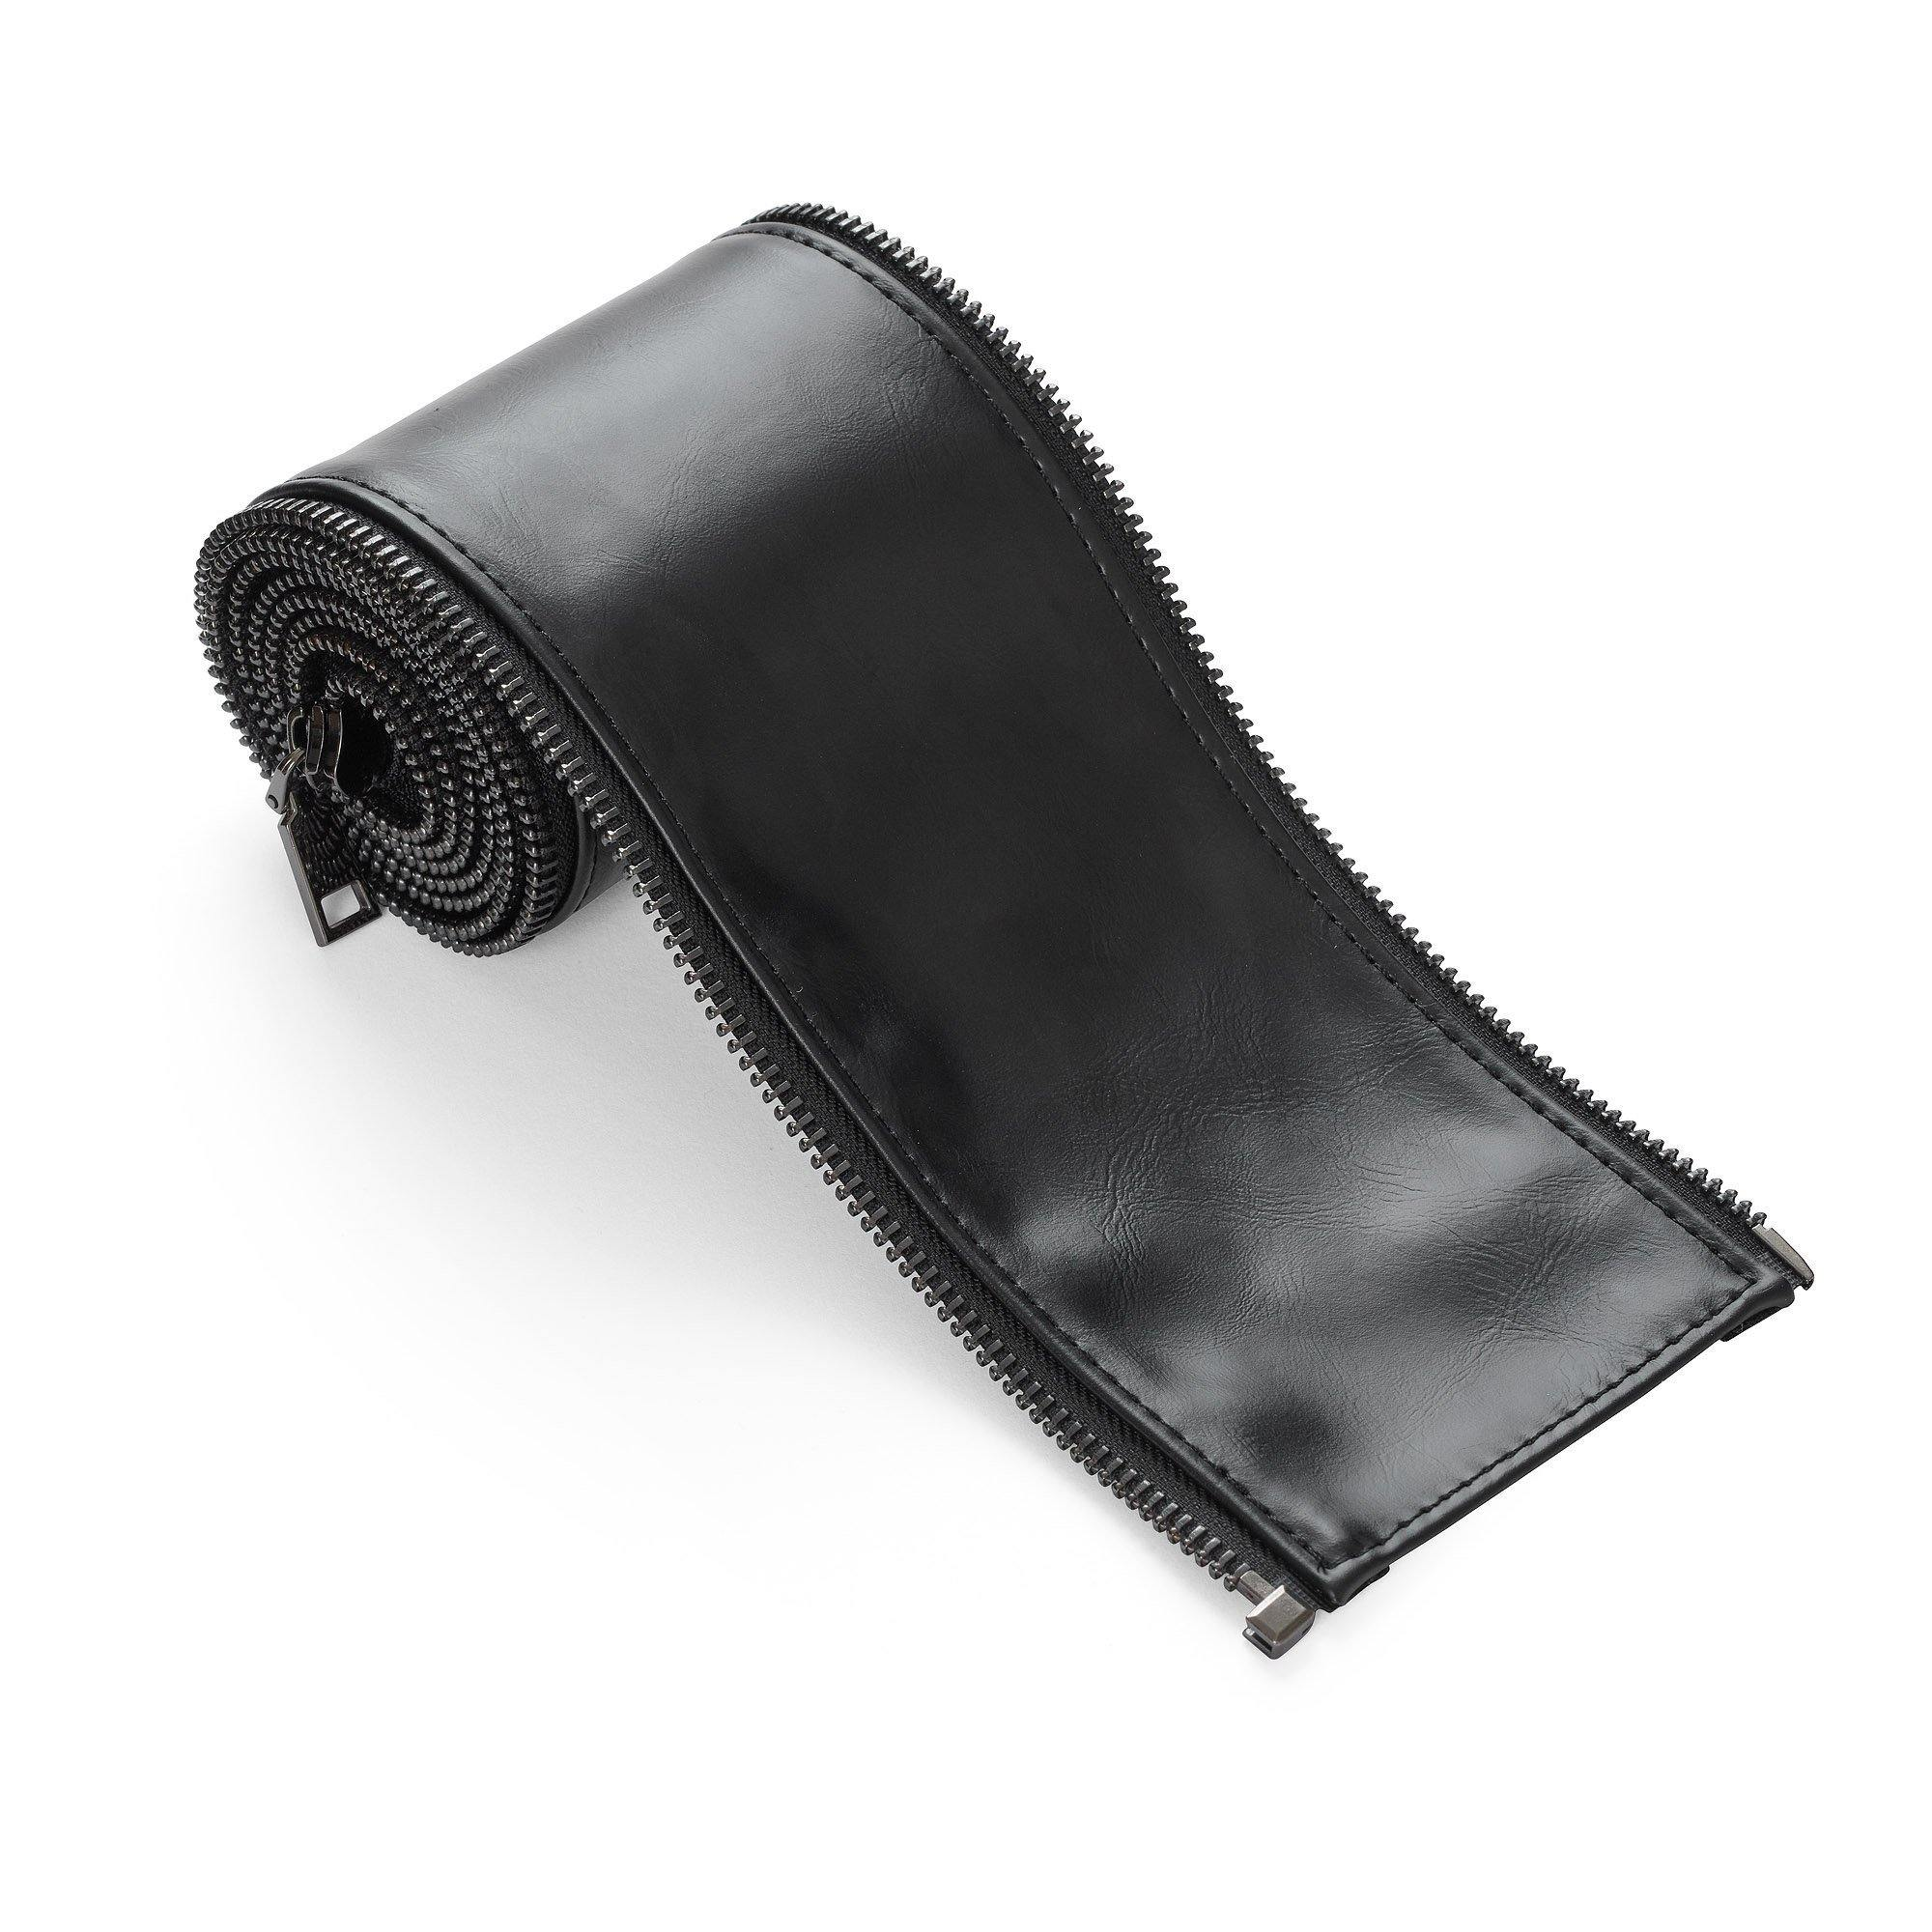 RackBuddy Leatherish - Black leather sleeve